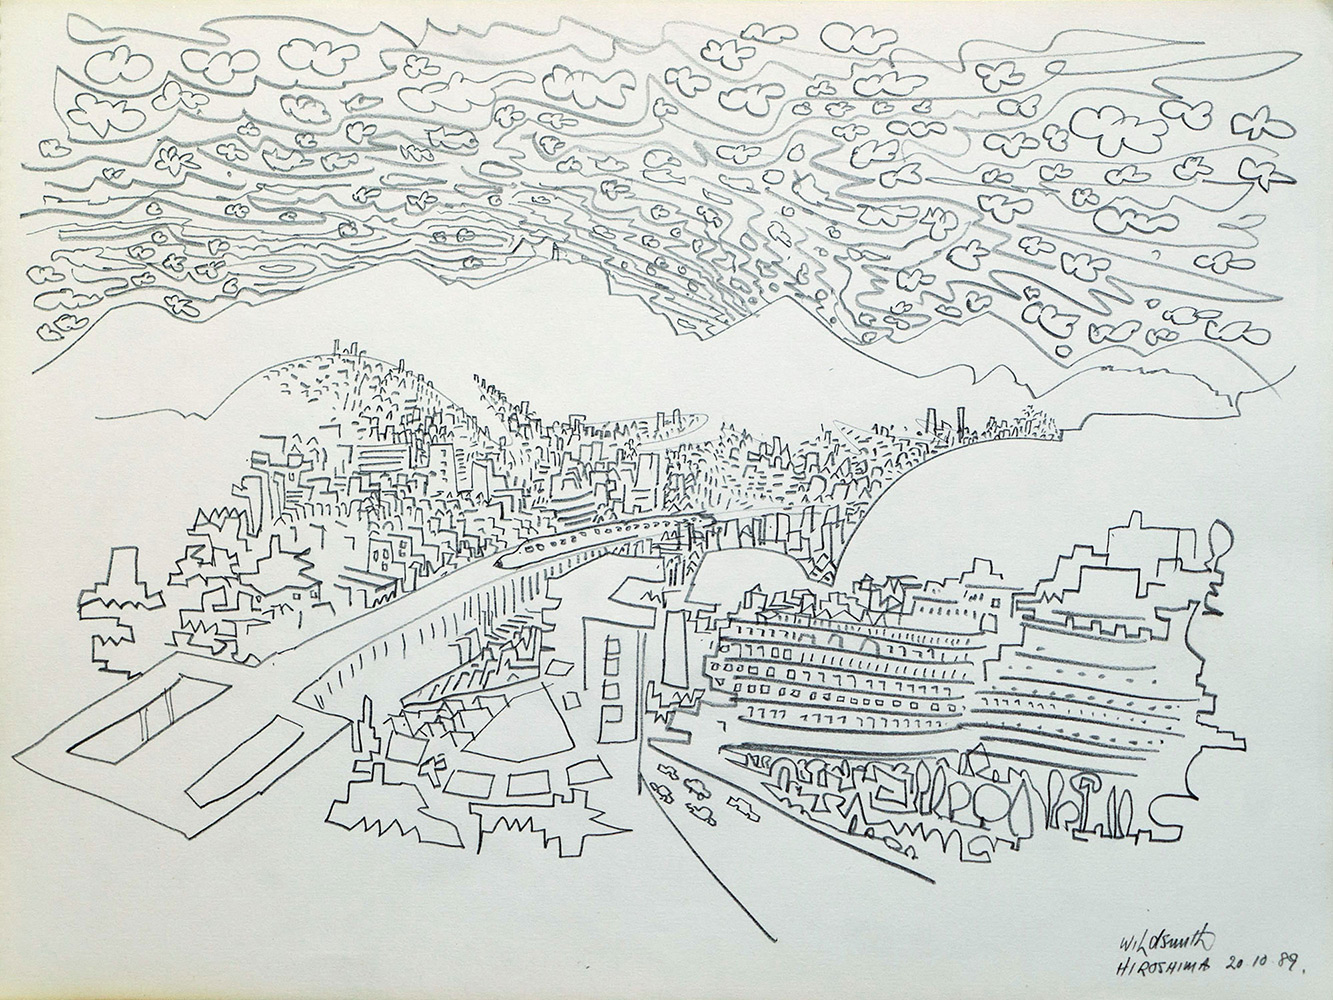 Hiroshima-sketch-brian-wildsmith-1989.jpg